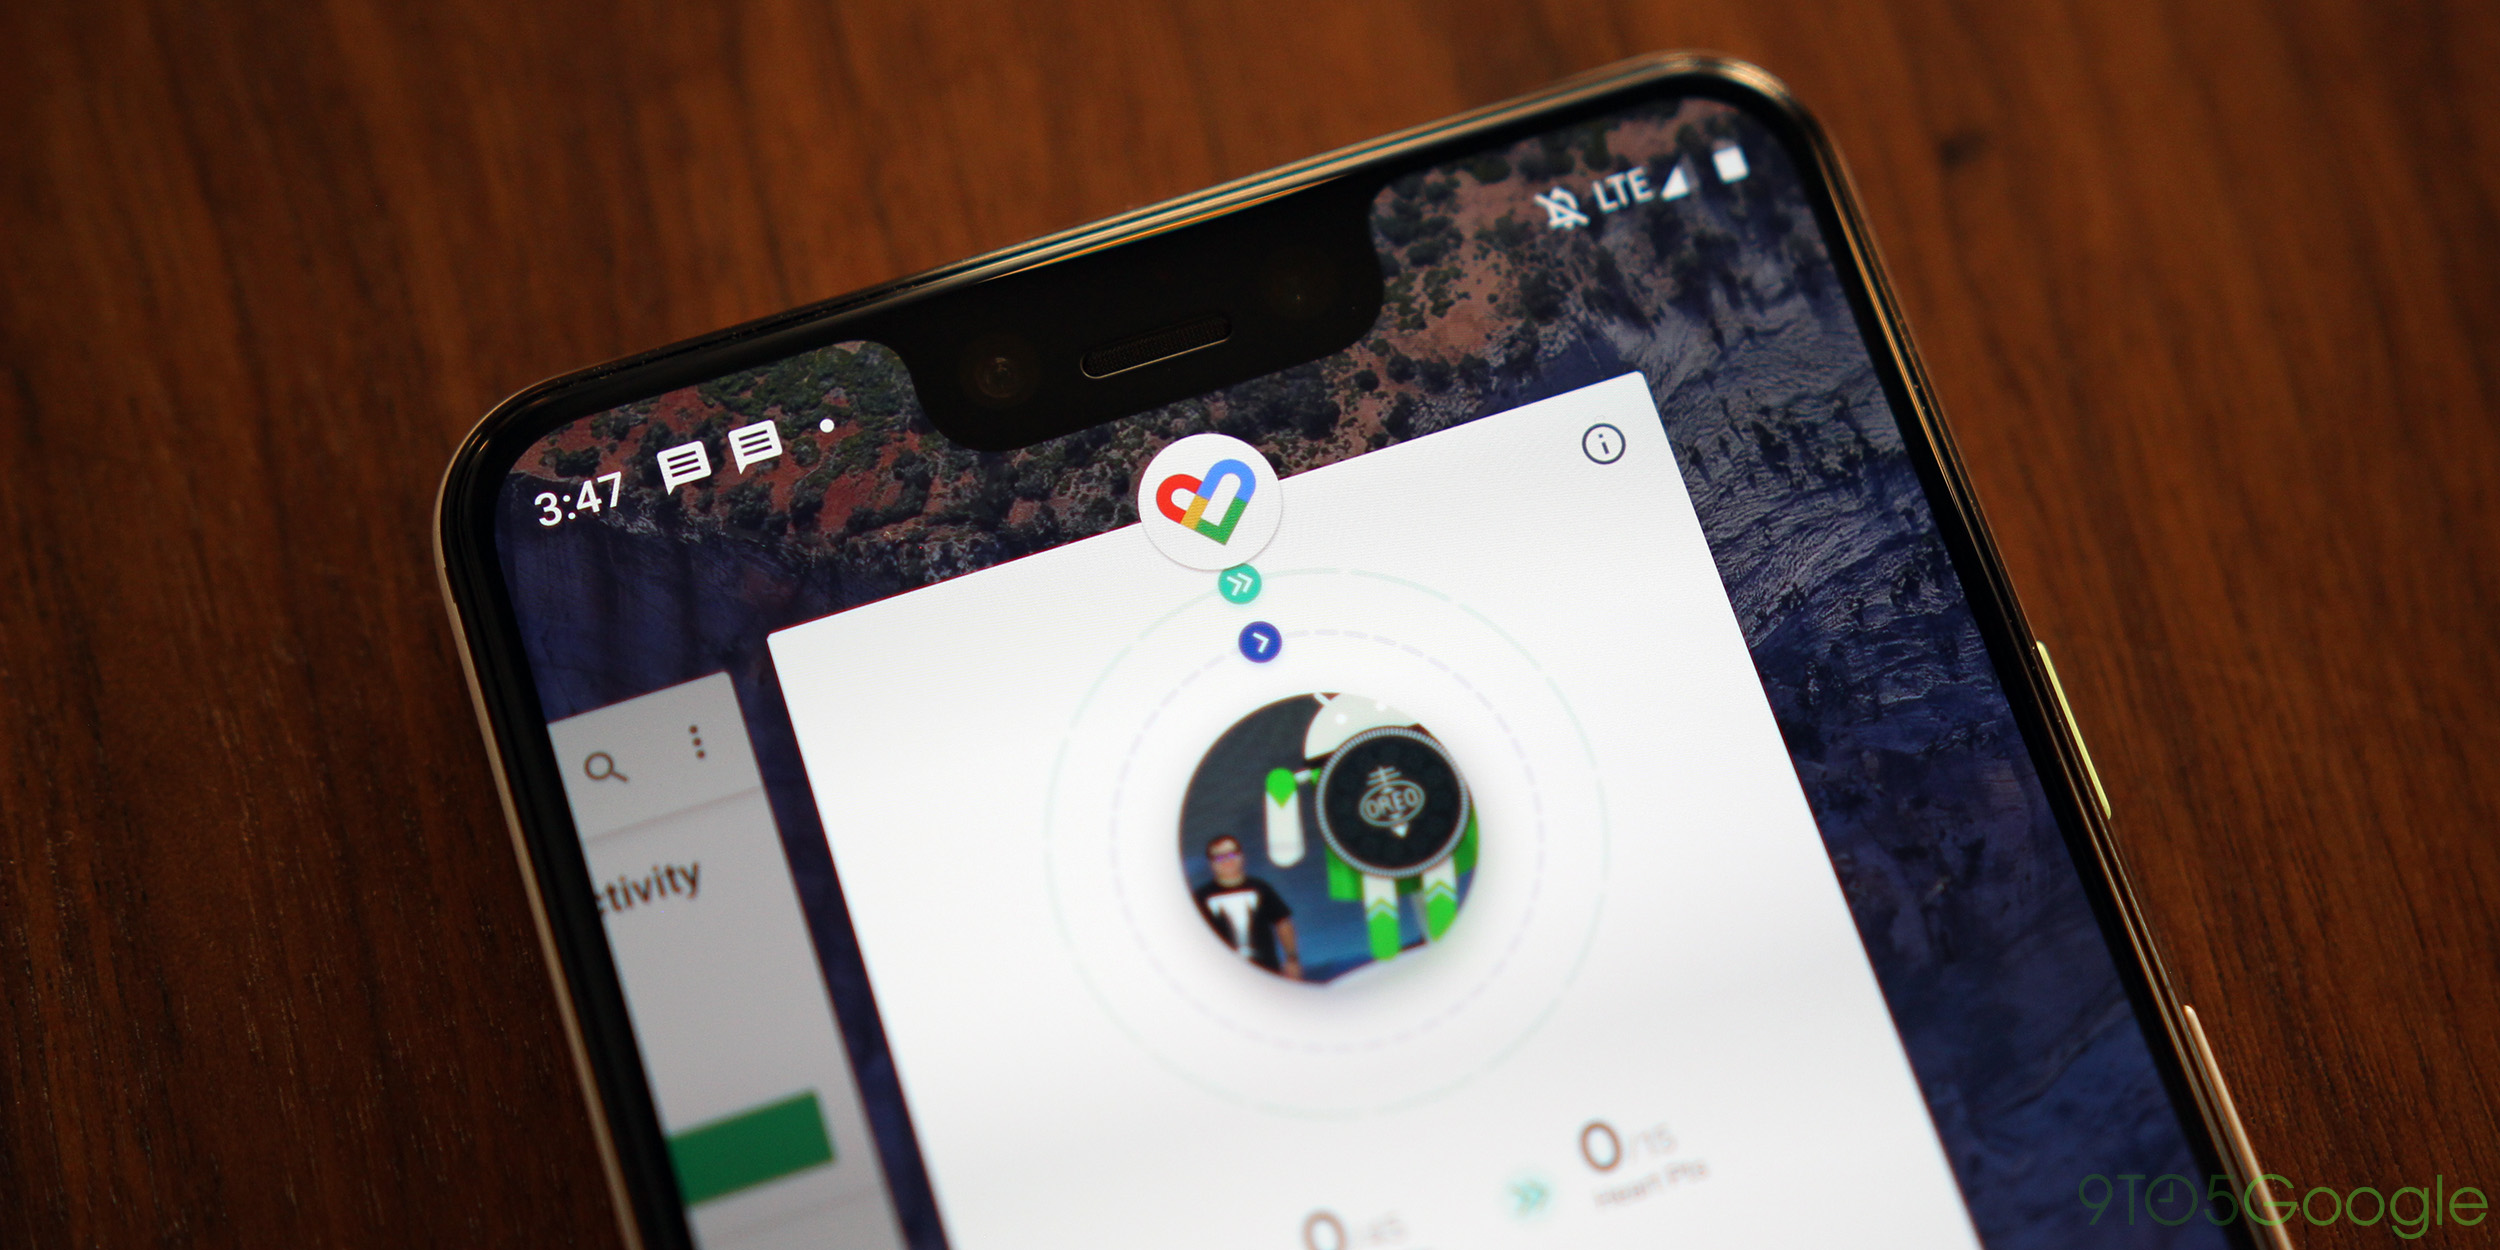 Google Fit update sees return of sleep tracking w/ 3rd-party apps, elevation tracking in workouts